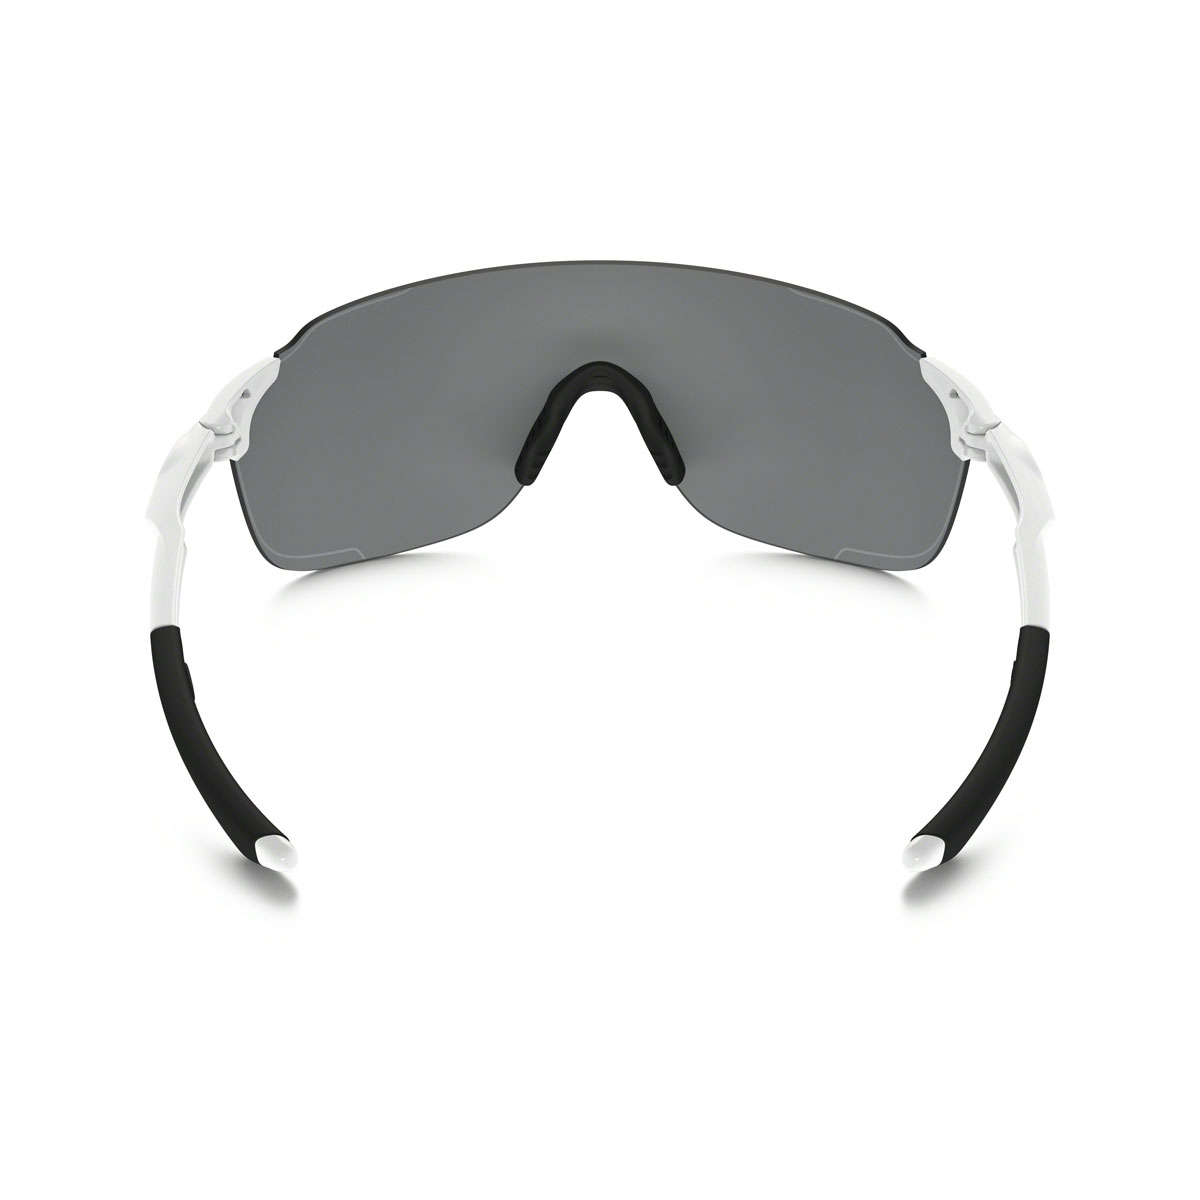 c523f704fc2 ... Image of Oakley EVZero Stride Sunglasses - Polished White Black Iridium  ...